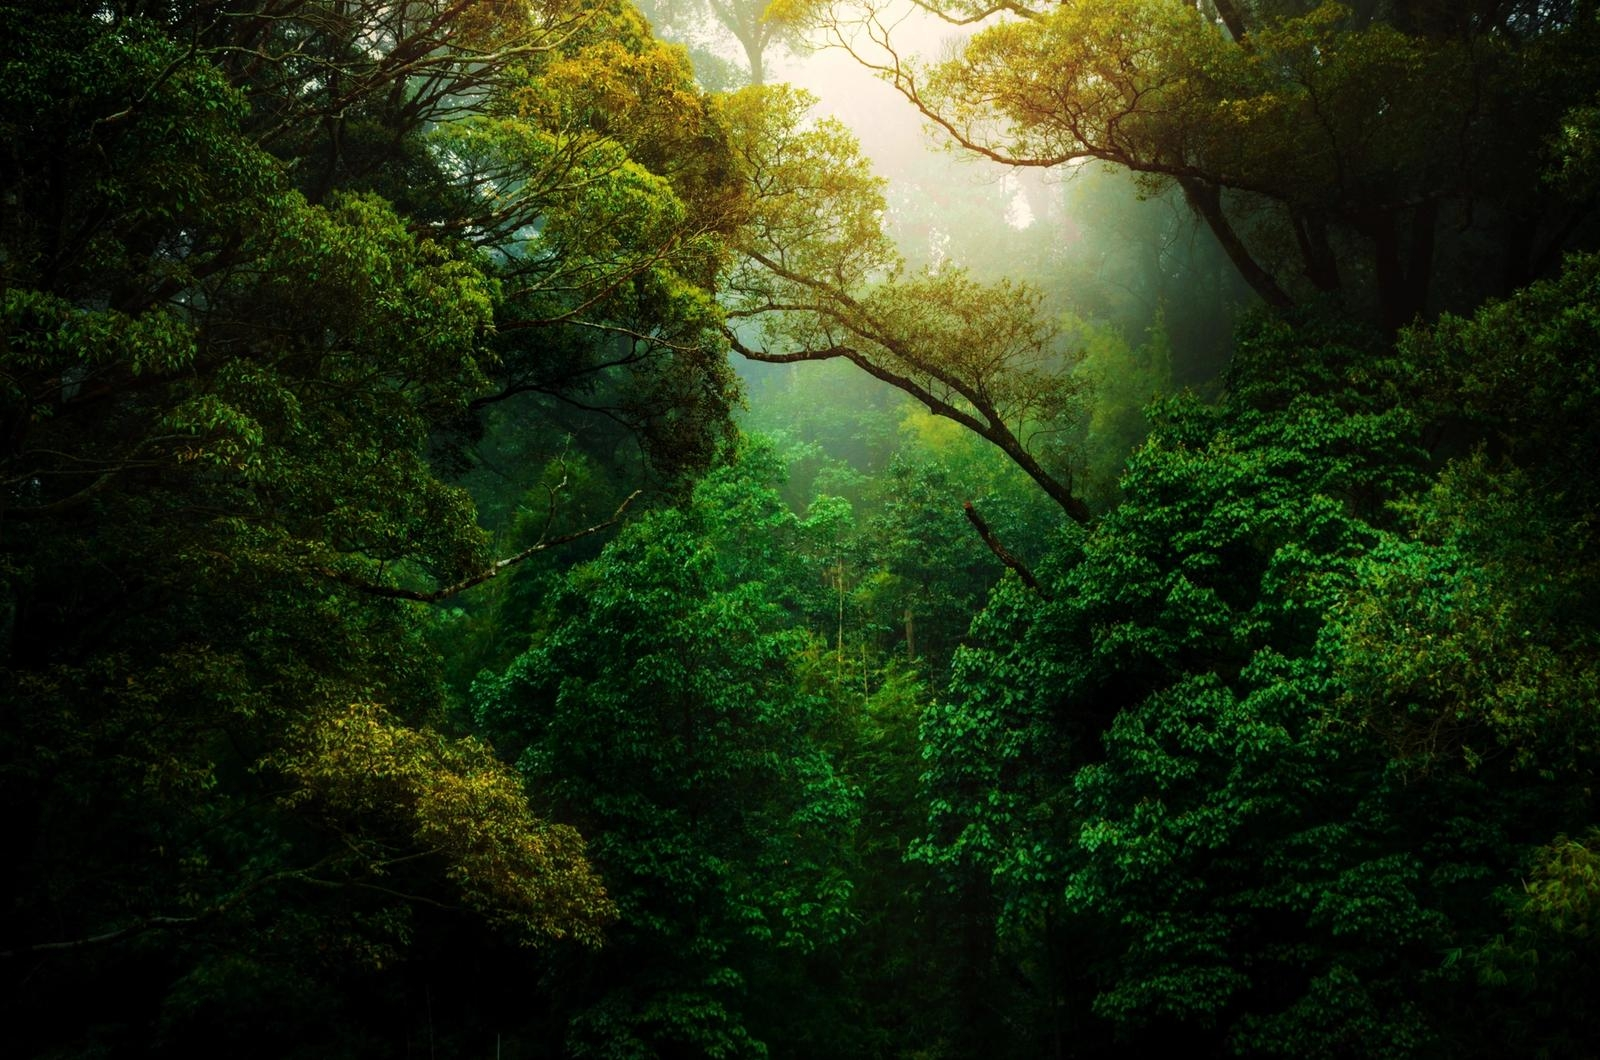 Forest background image